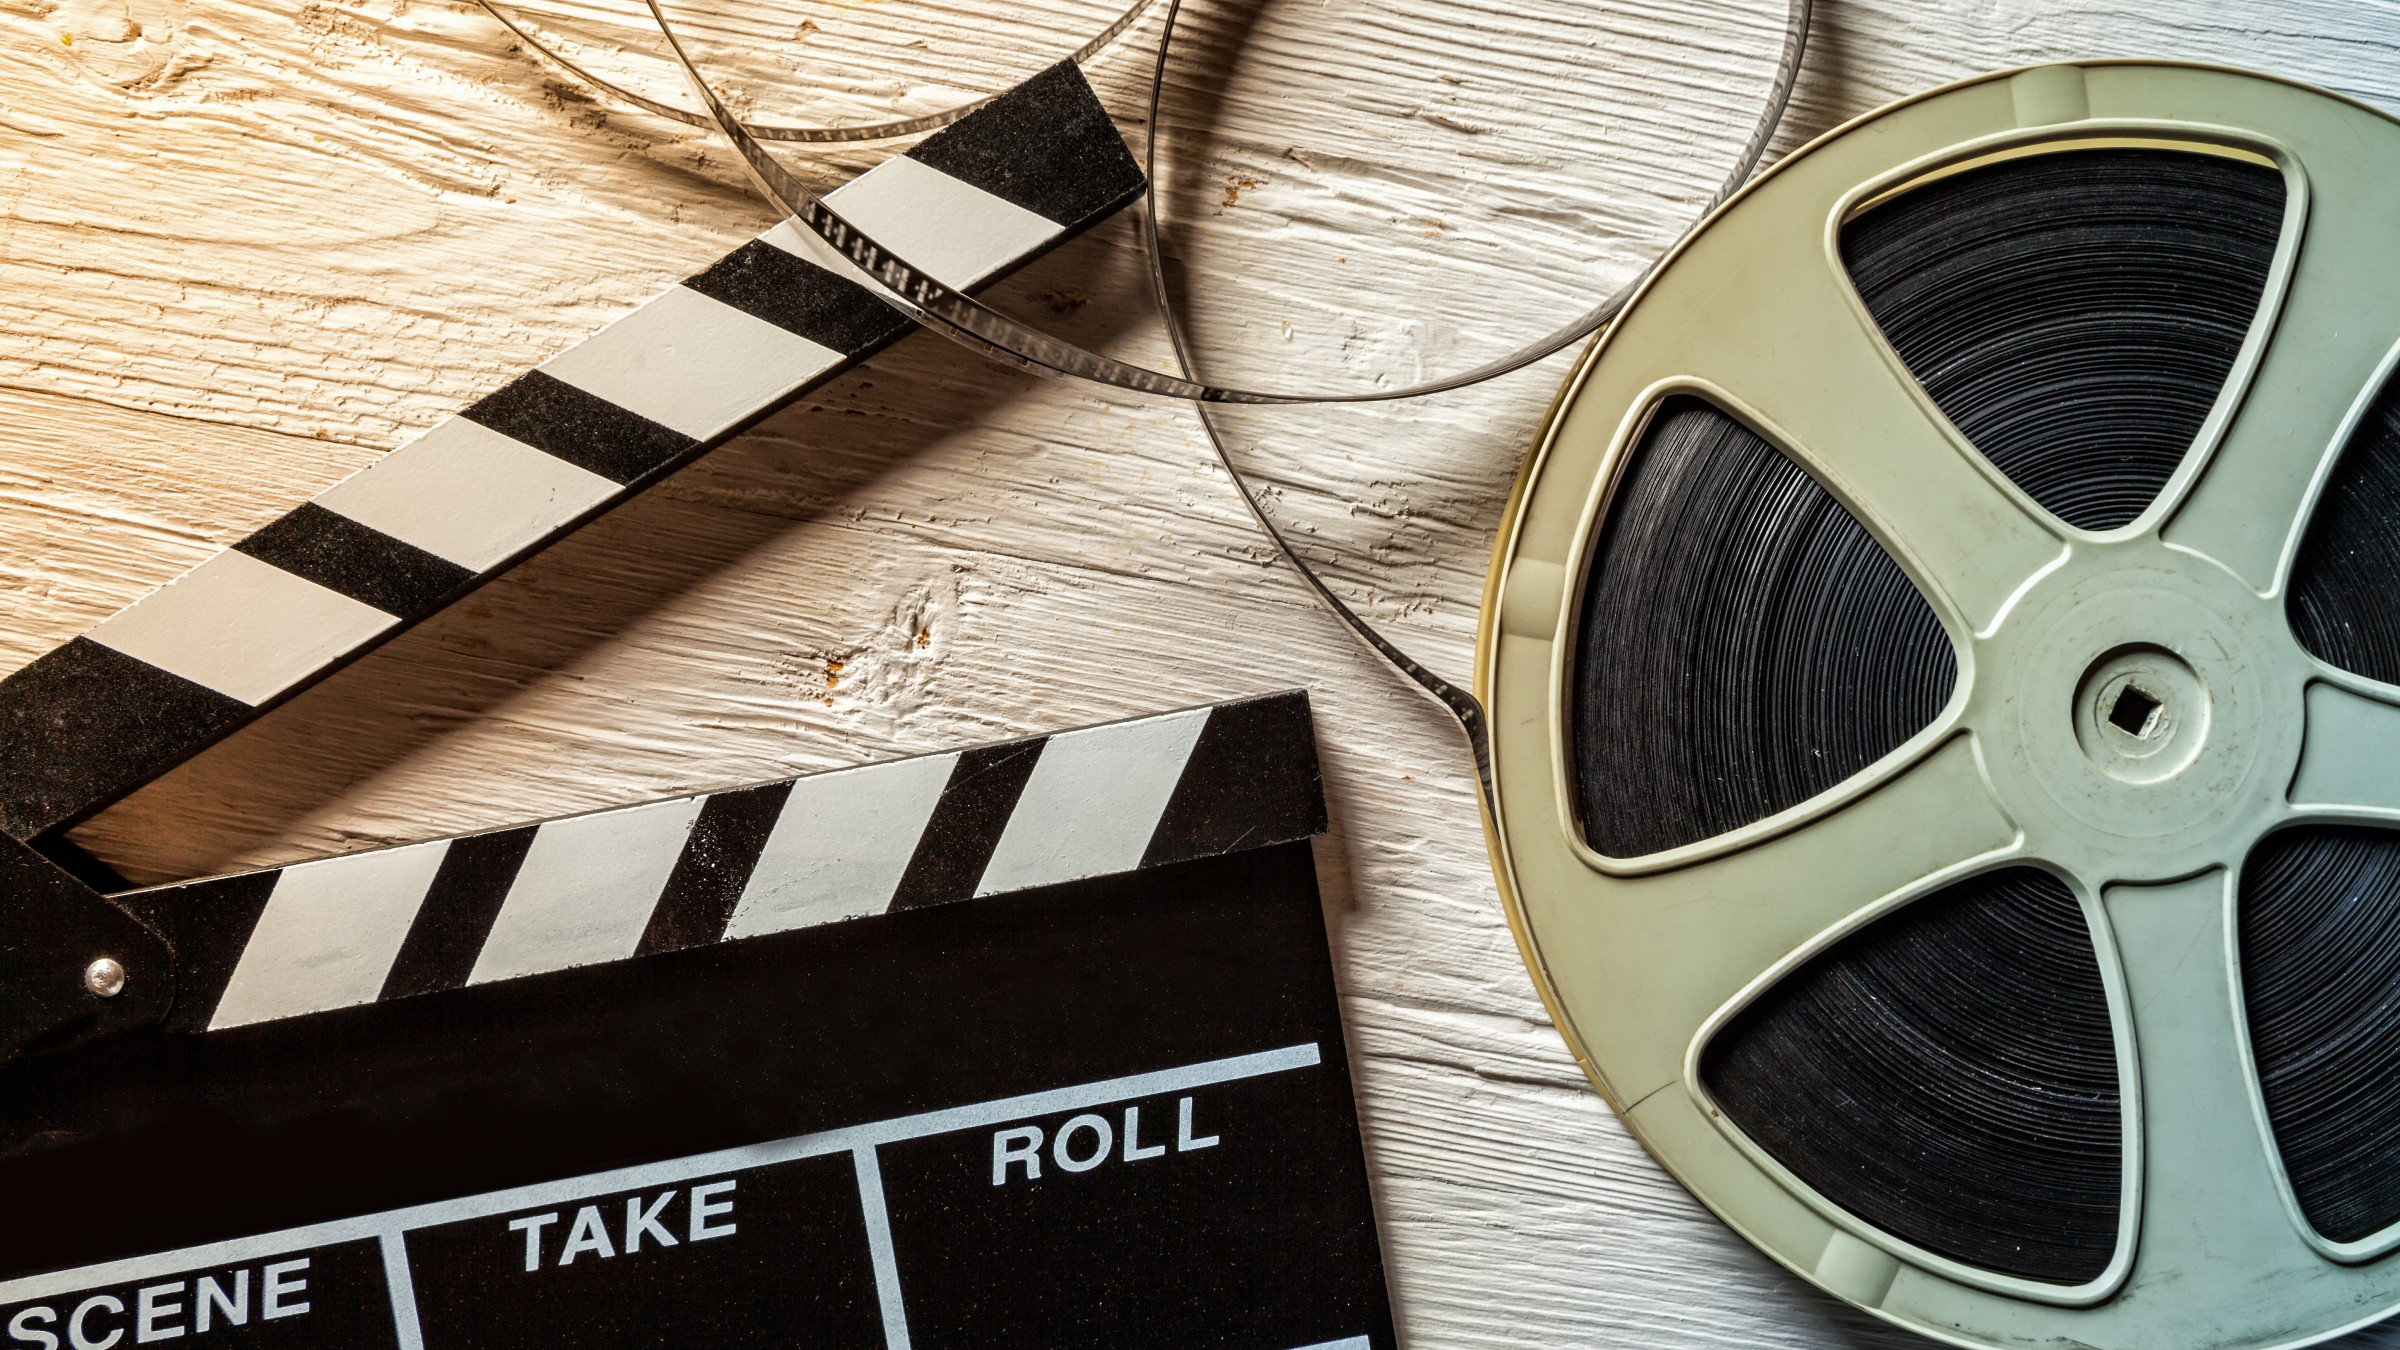 16 of the Biggest Lessons These World-Class Filmmakers Learned from Working in Film